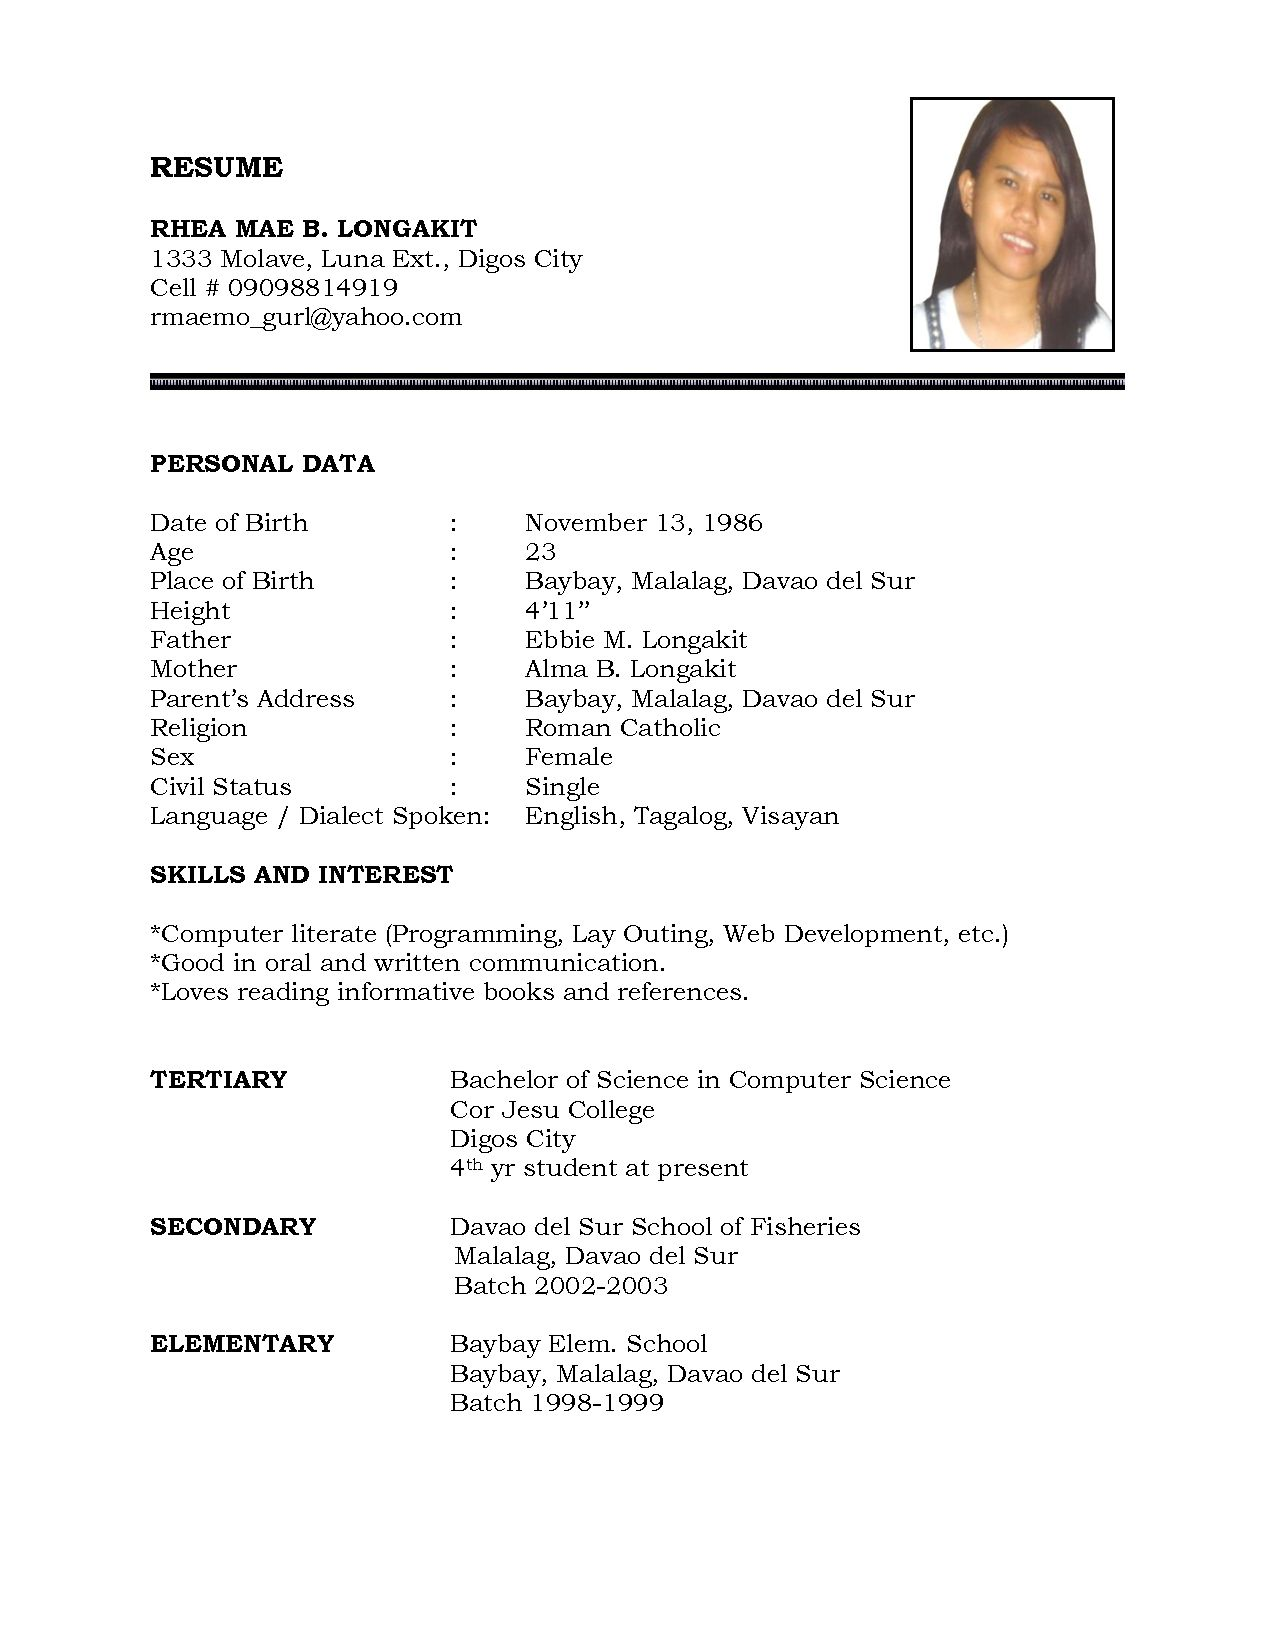 resume sample simple de9e2a60f the simple format of resume for job. Resume Example. Resume CV Cover Letter